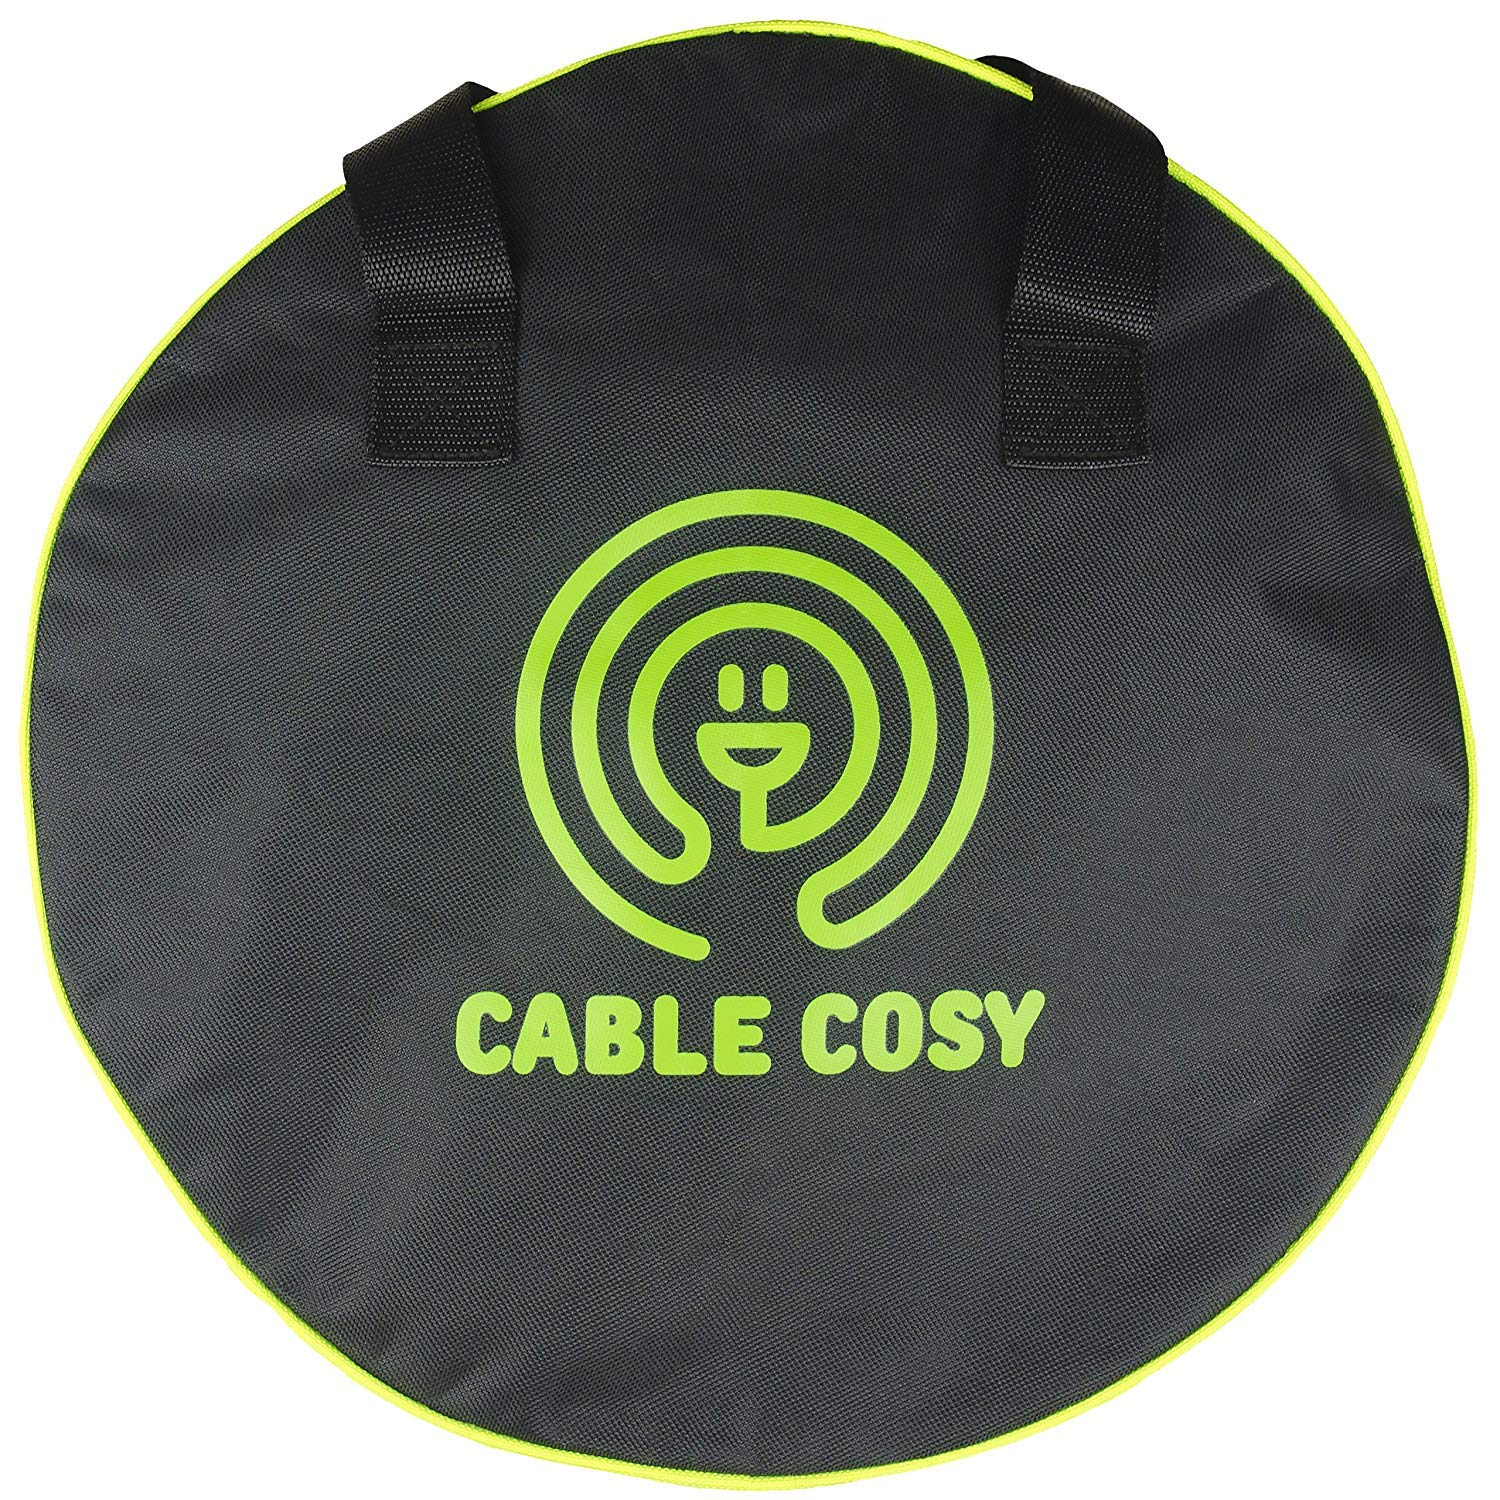 Quality Mains Cable Carry Bag. Perfect for Mains Cables For The Caravan, Tools, Jump Leads and Garden Equipment. 40 cm Diámetro. Strong Zip. Cable Cosy